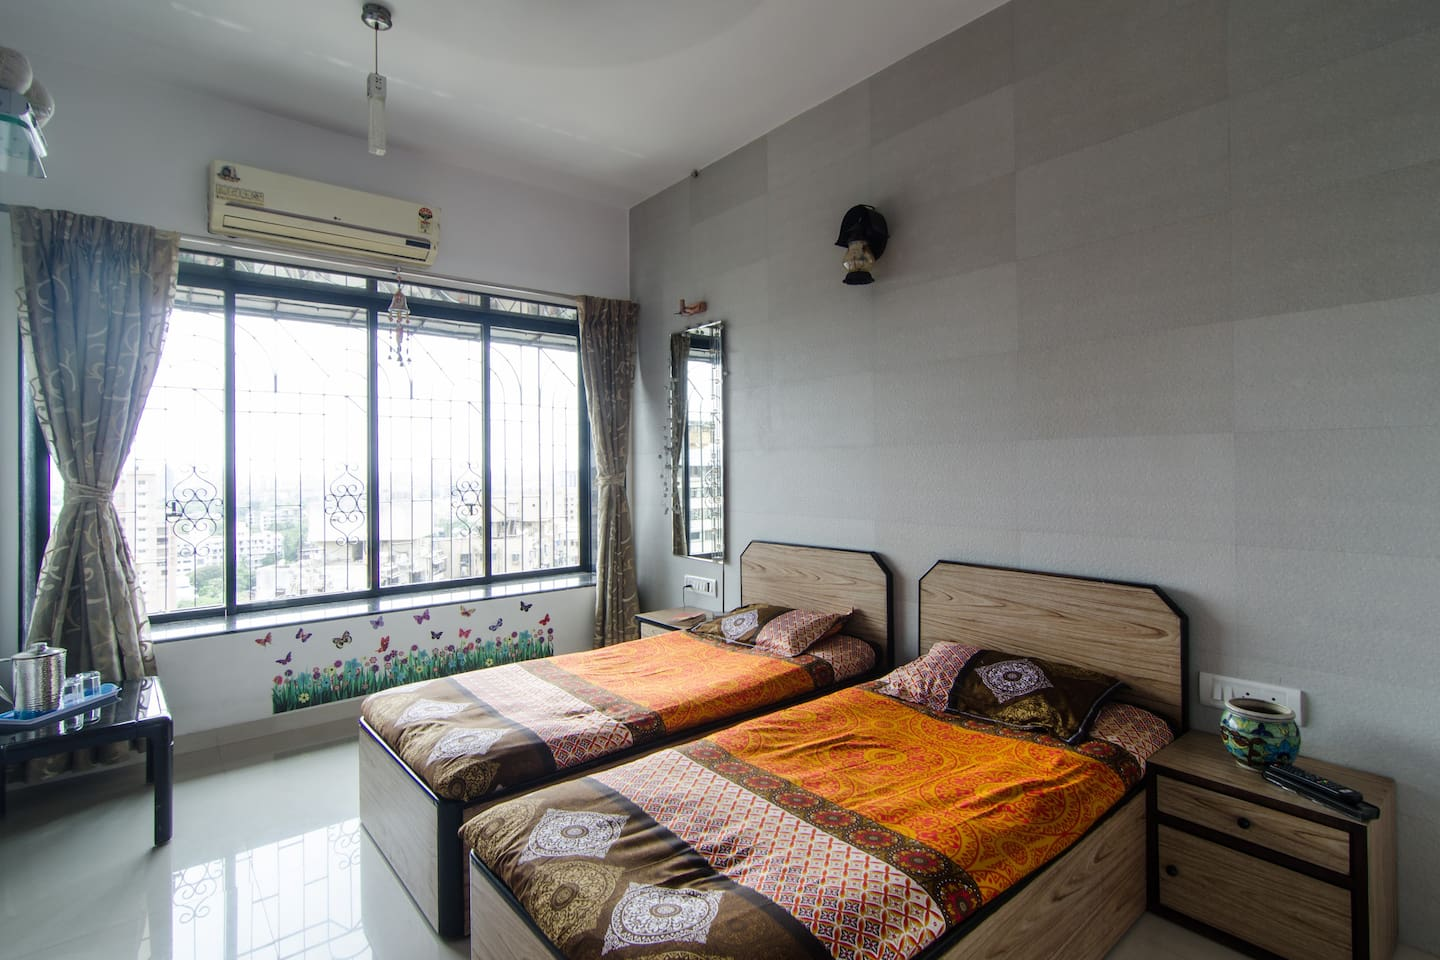 Clean and spacious room with all amenities with beautiful window seating to relax and enjoy the view.